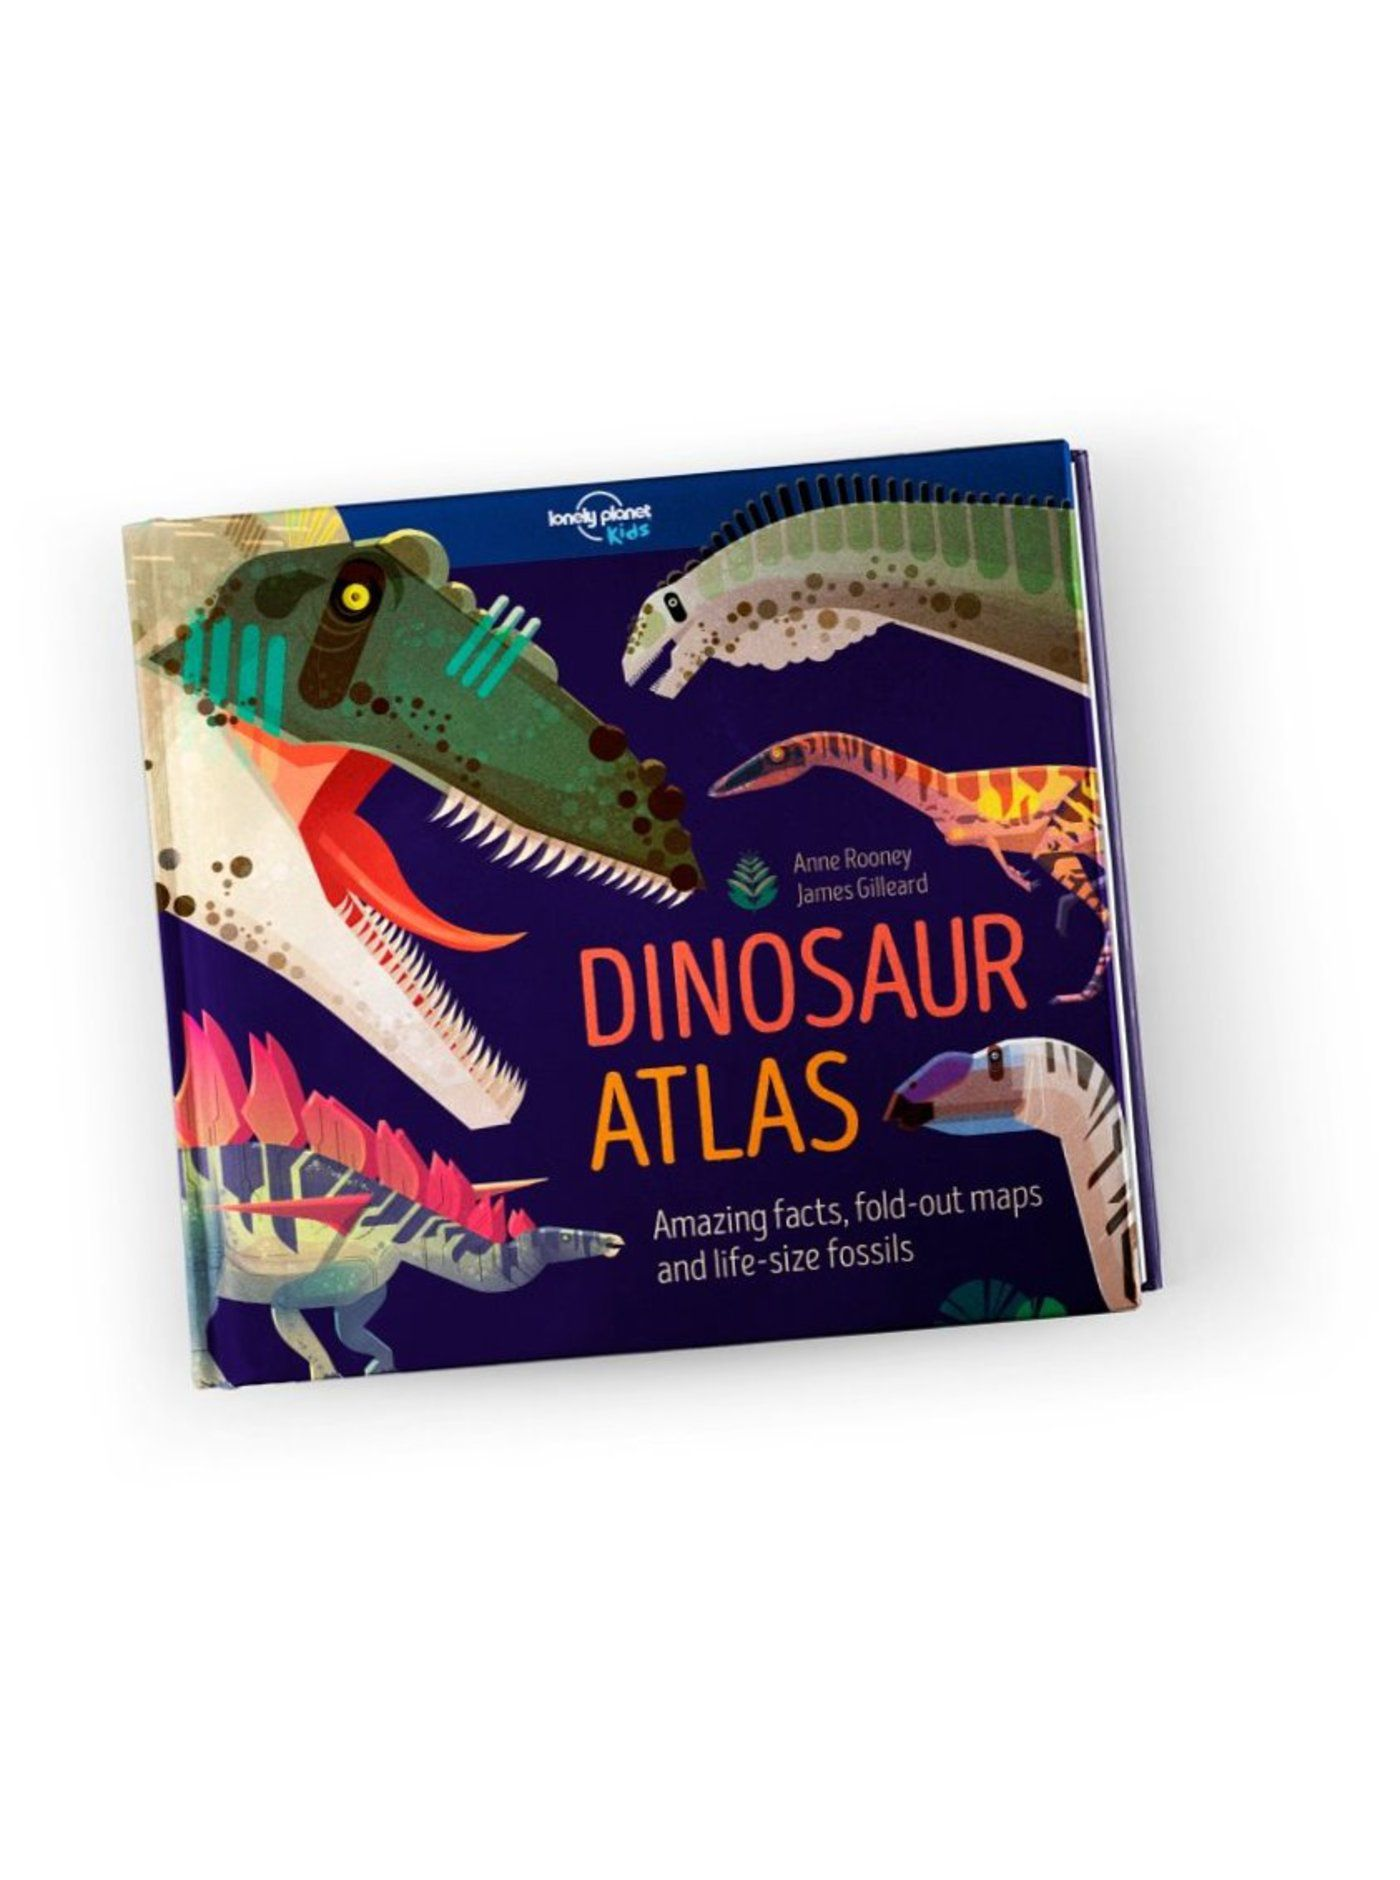 Dinosaur Atlas (North and South America edition)